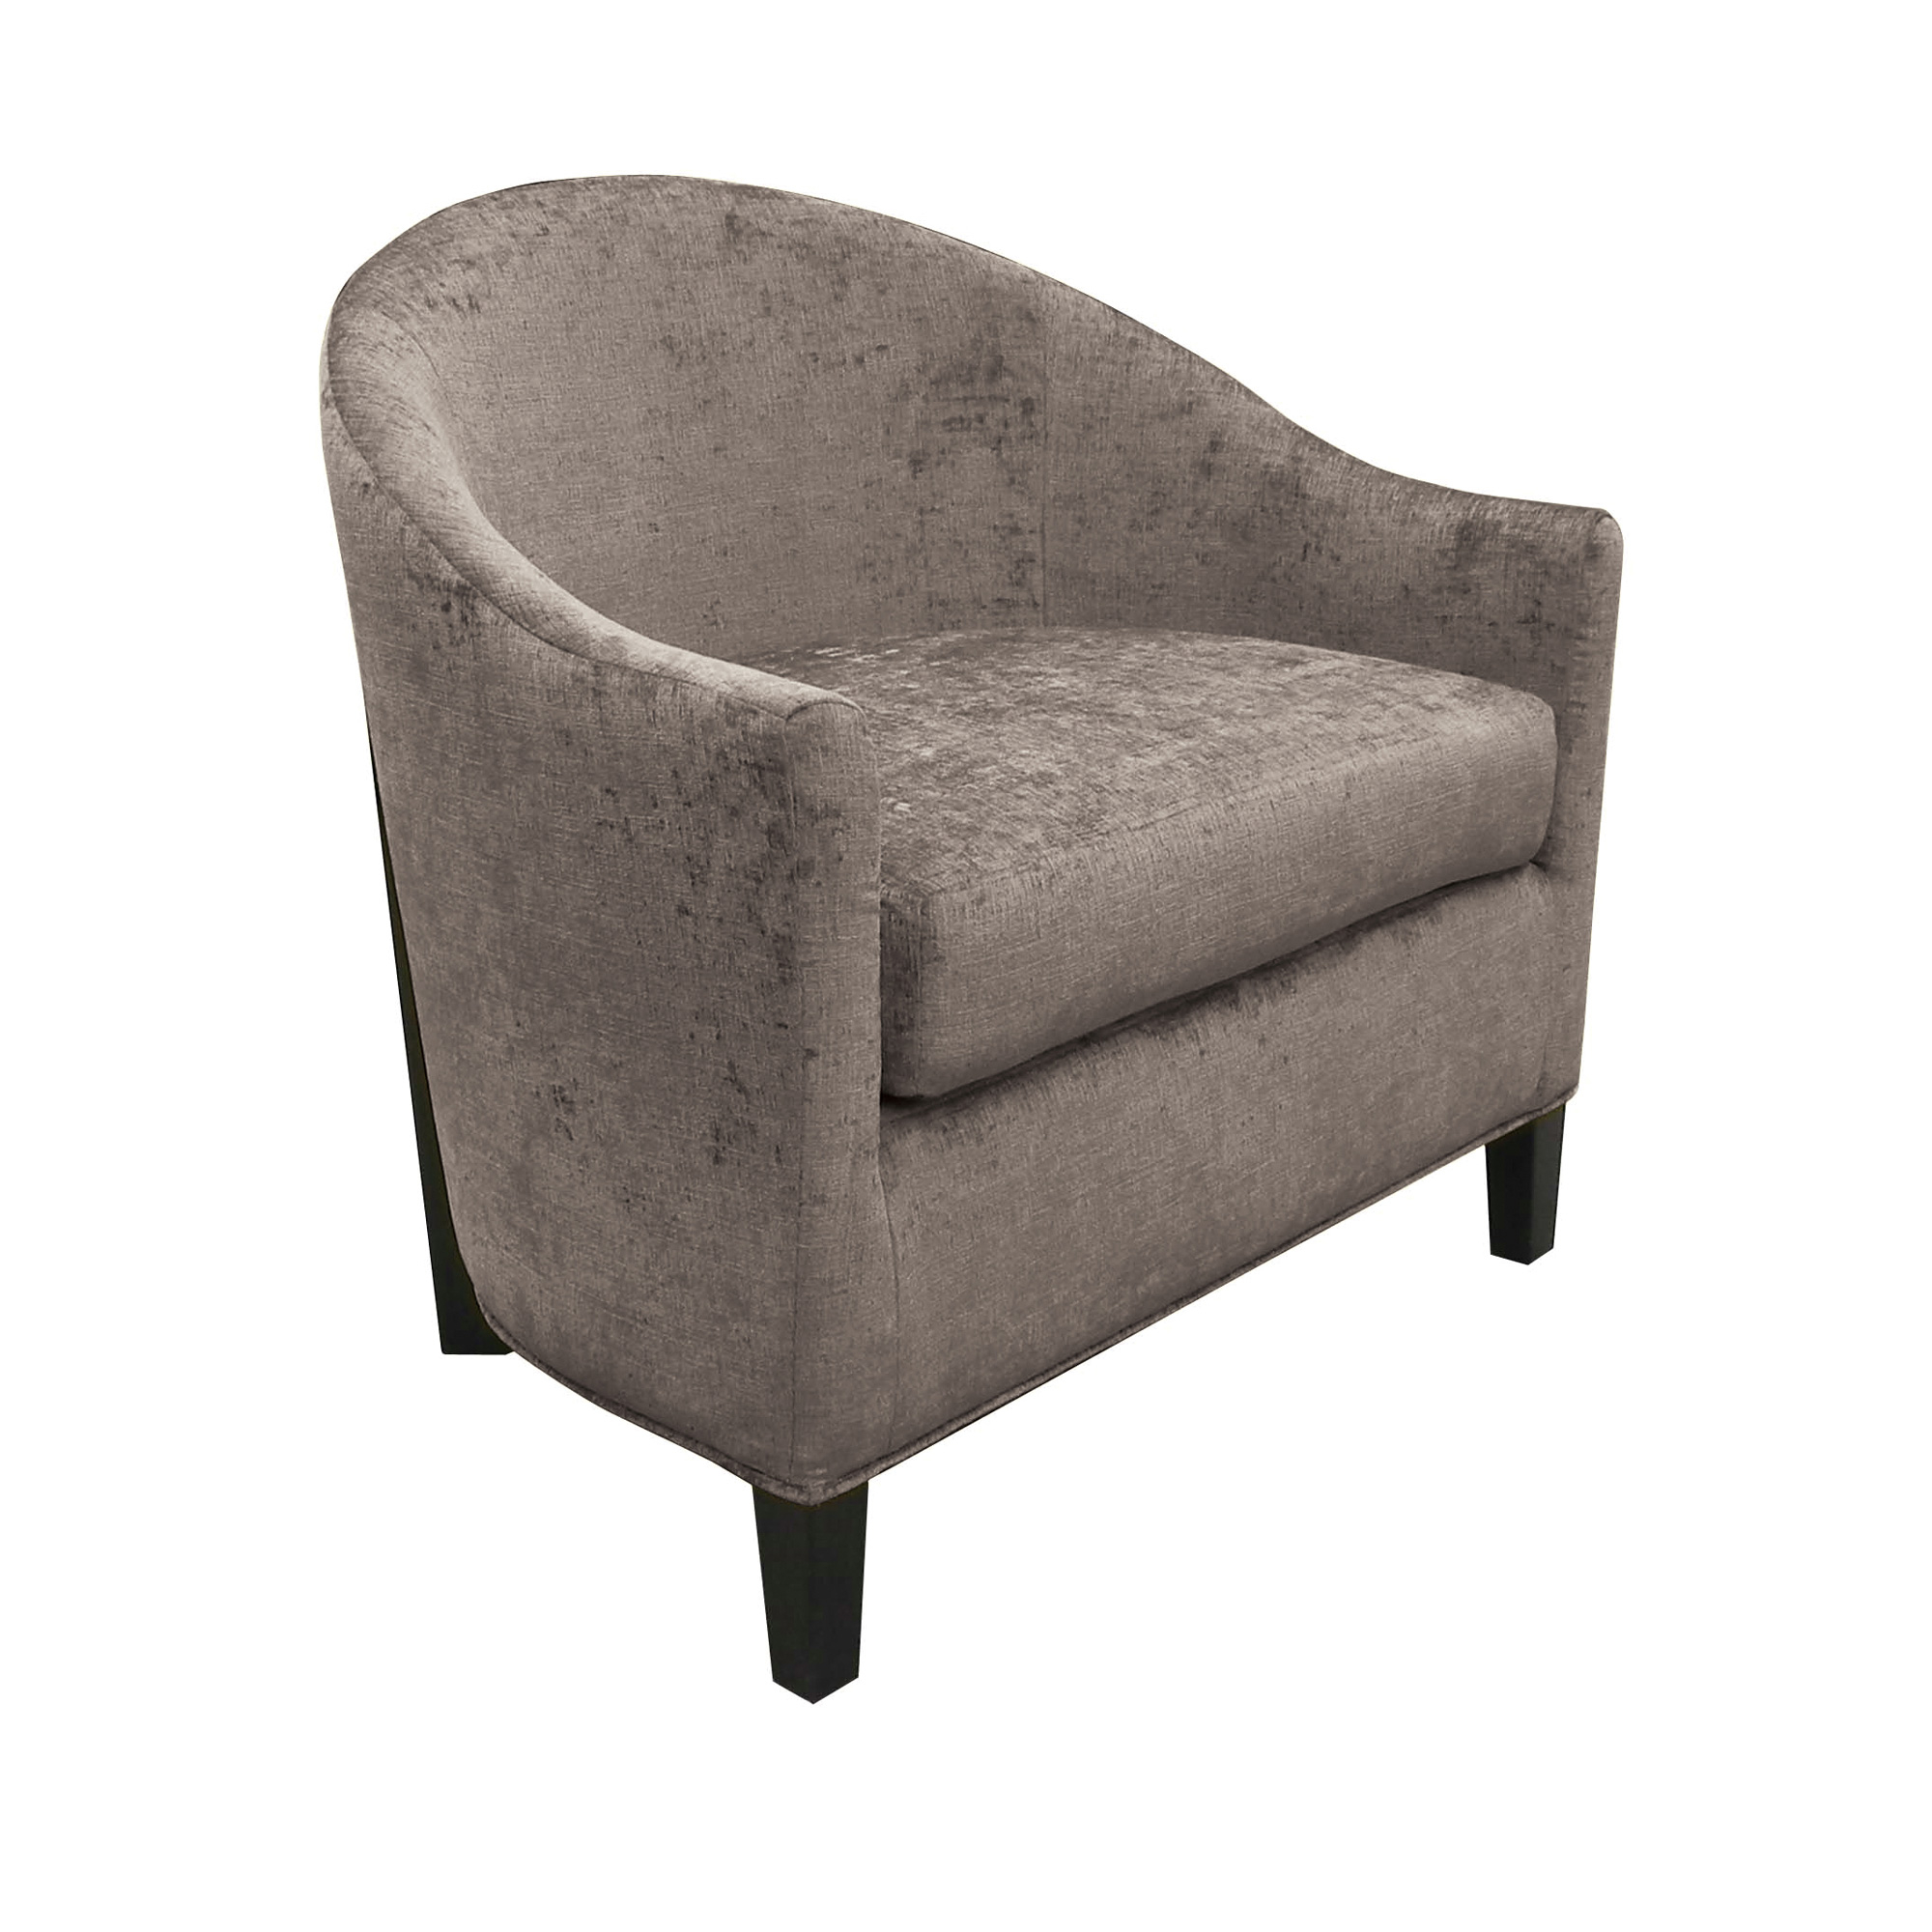 Maria Yee Nina Lounge Chair